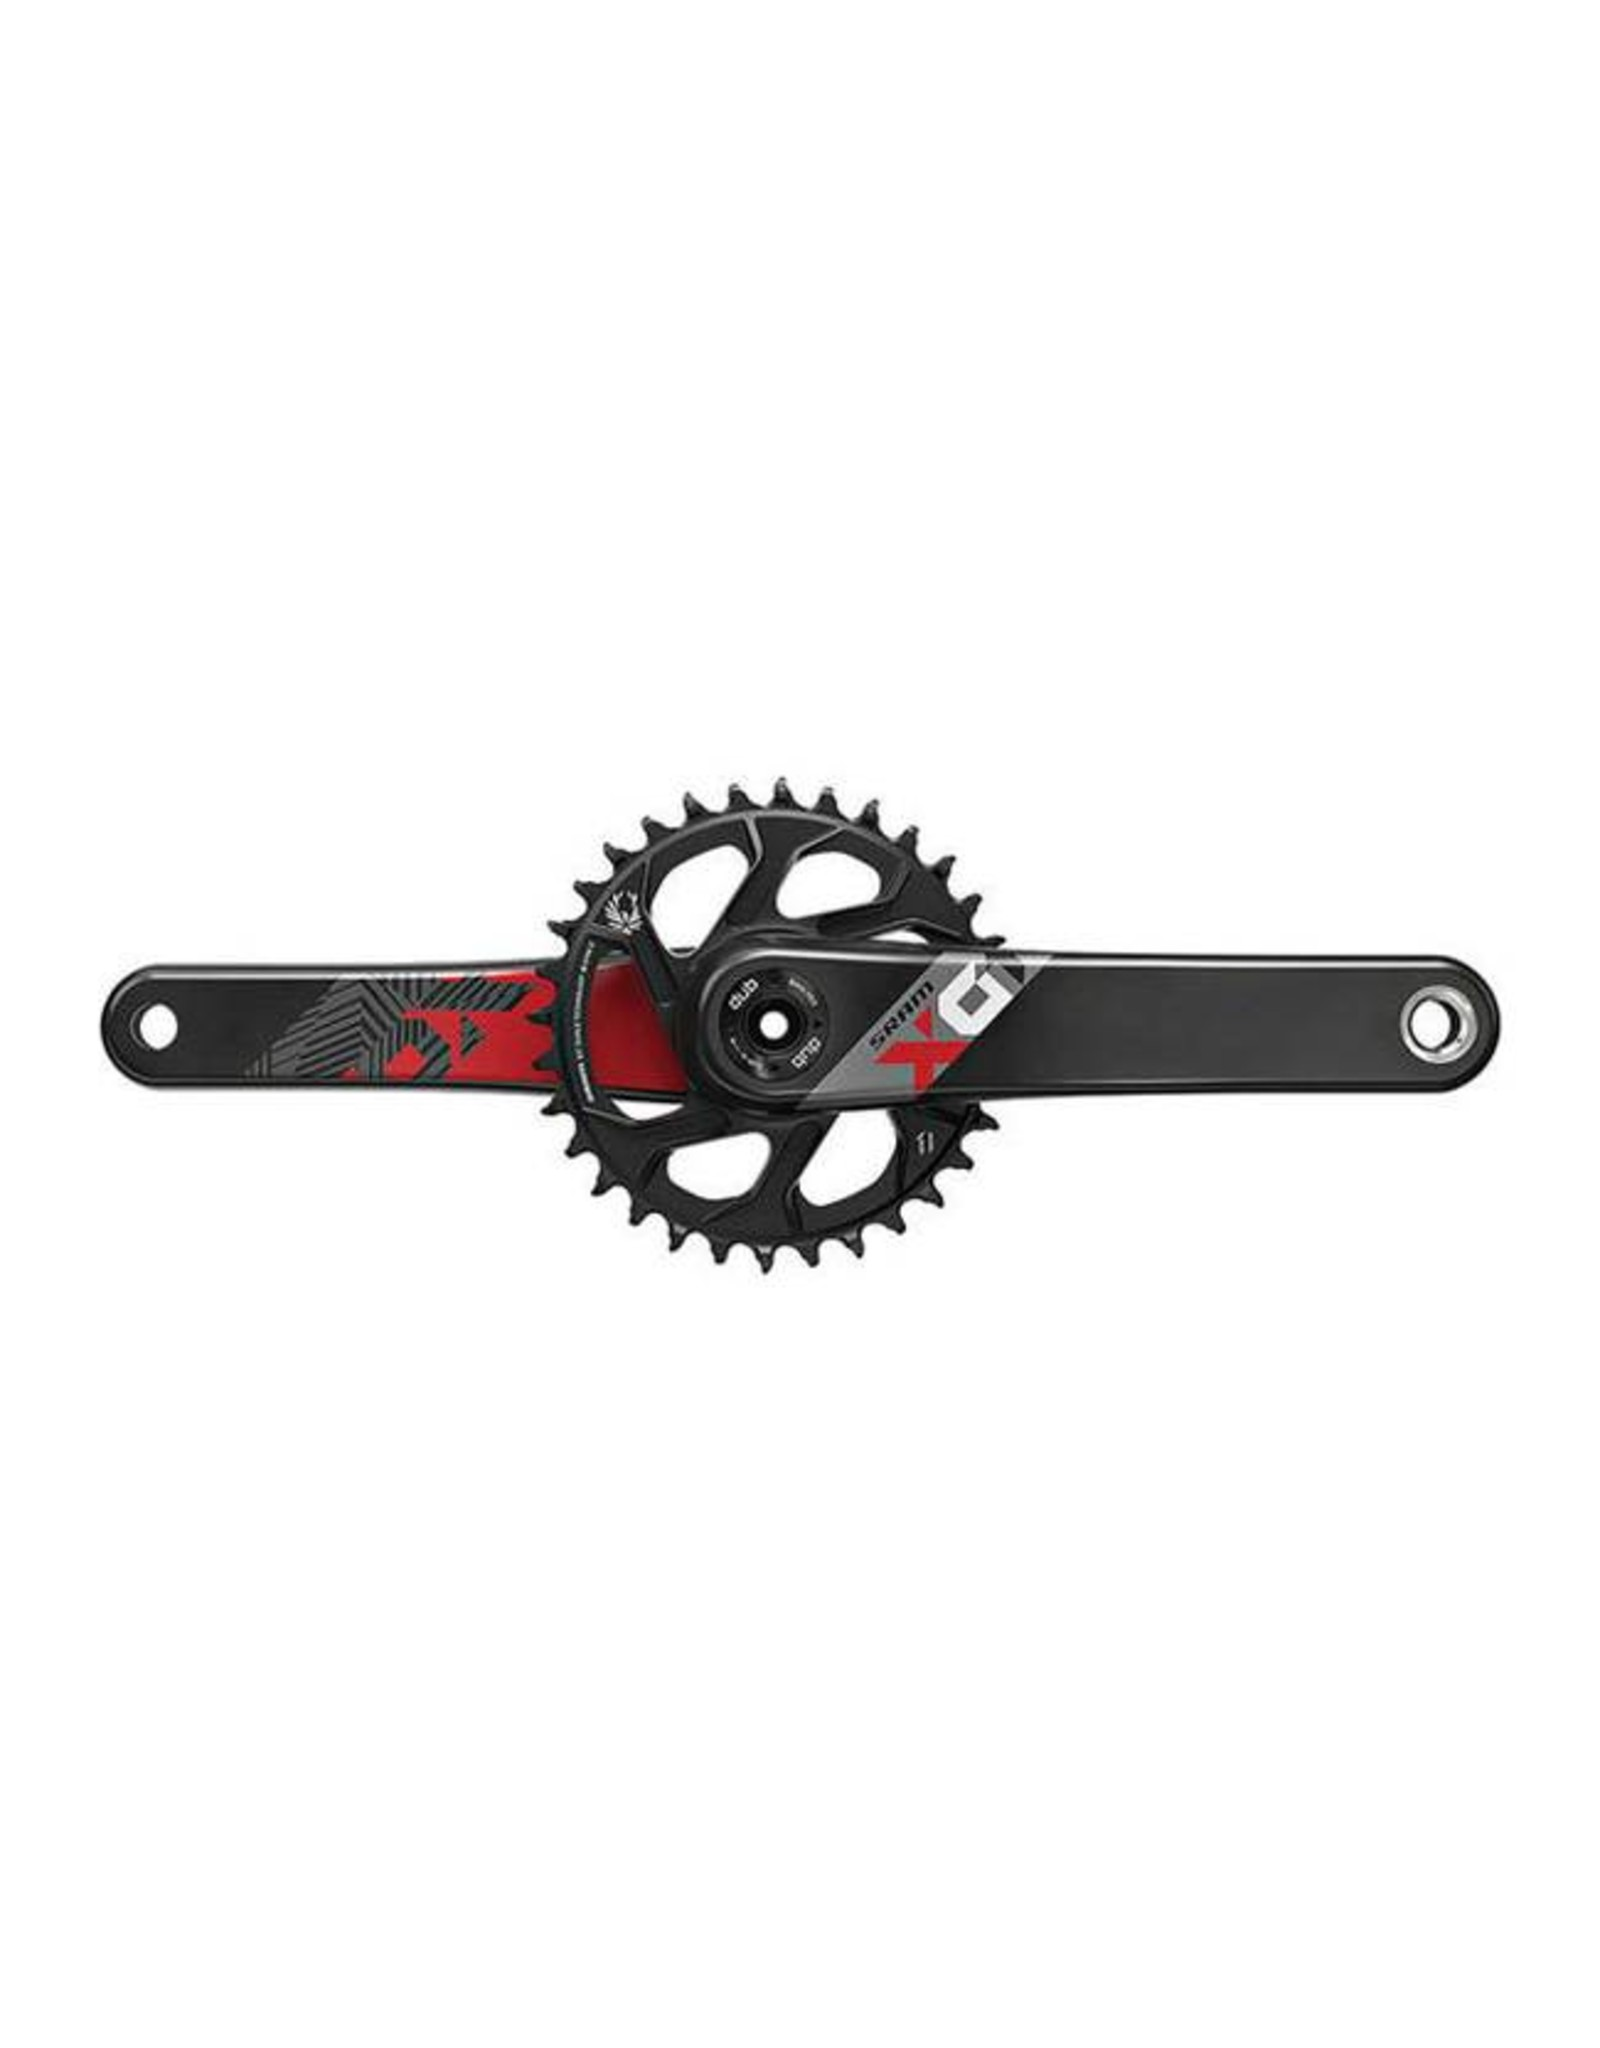 SRAM SRAM X01 Eagle Carbon DUB Crankset 170mm Direct Mount 32t X-Sync 2 Chainring Red, Bottom Bracket Not Included